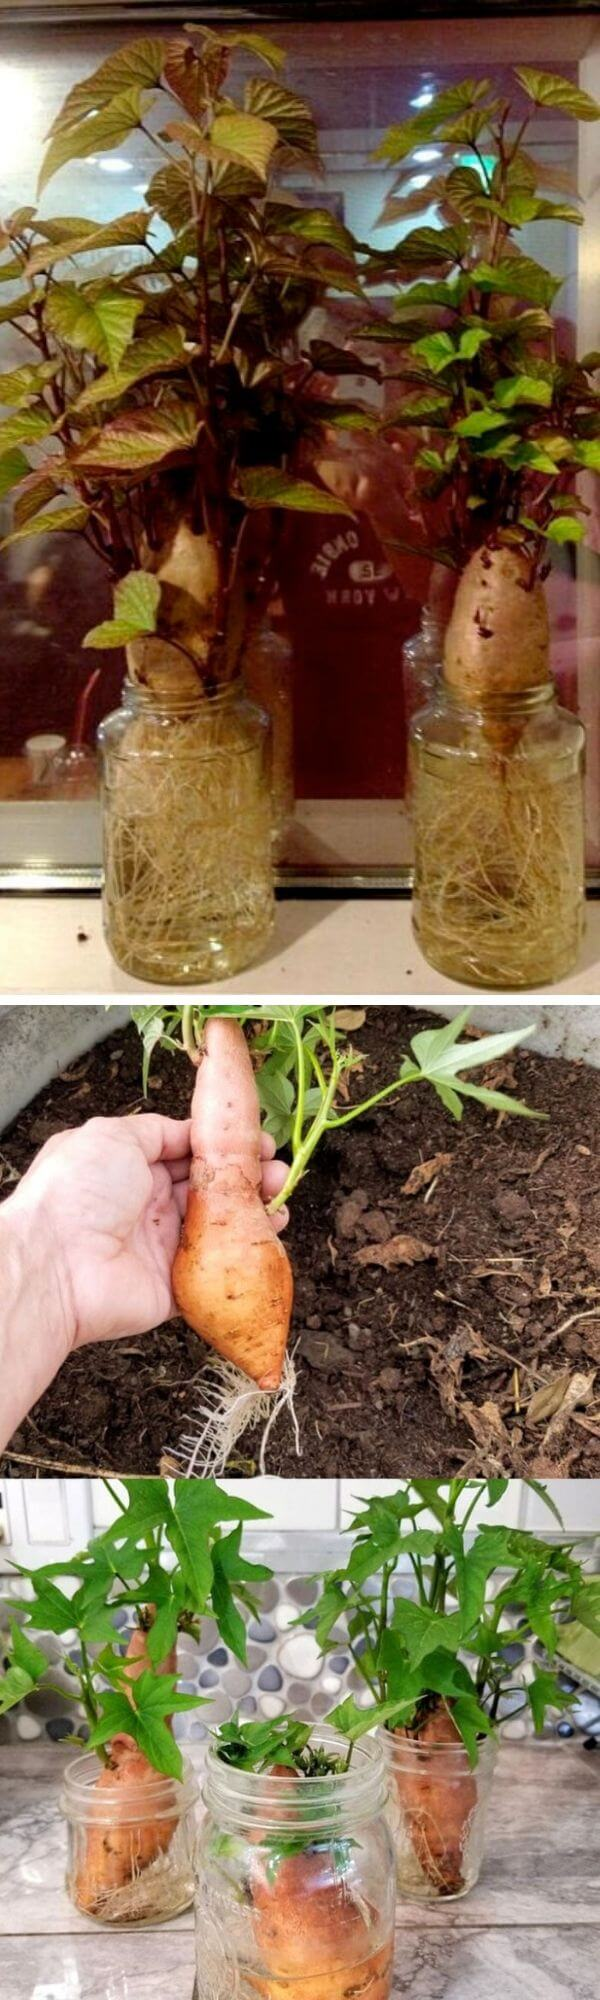 How to grow potatoes from kitchen scraps